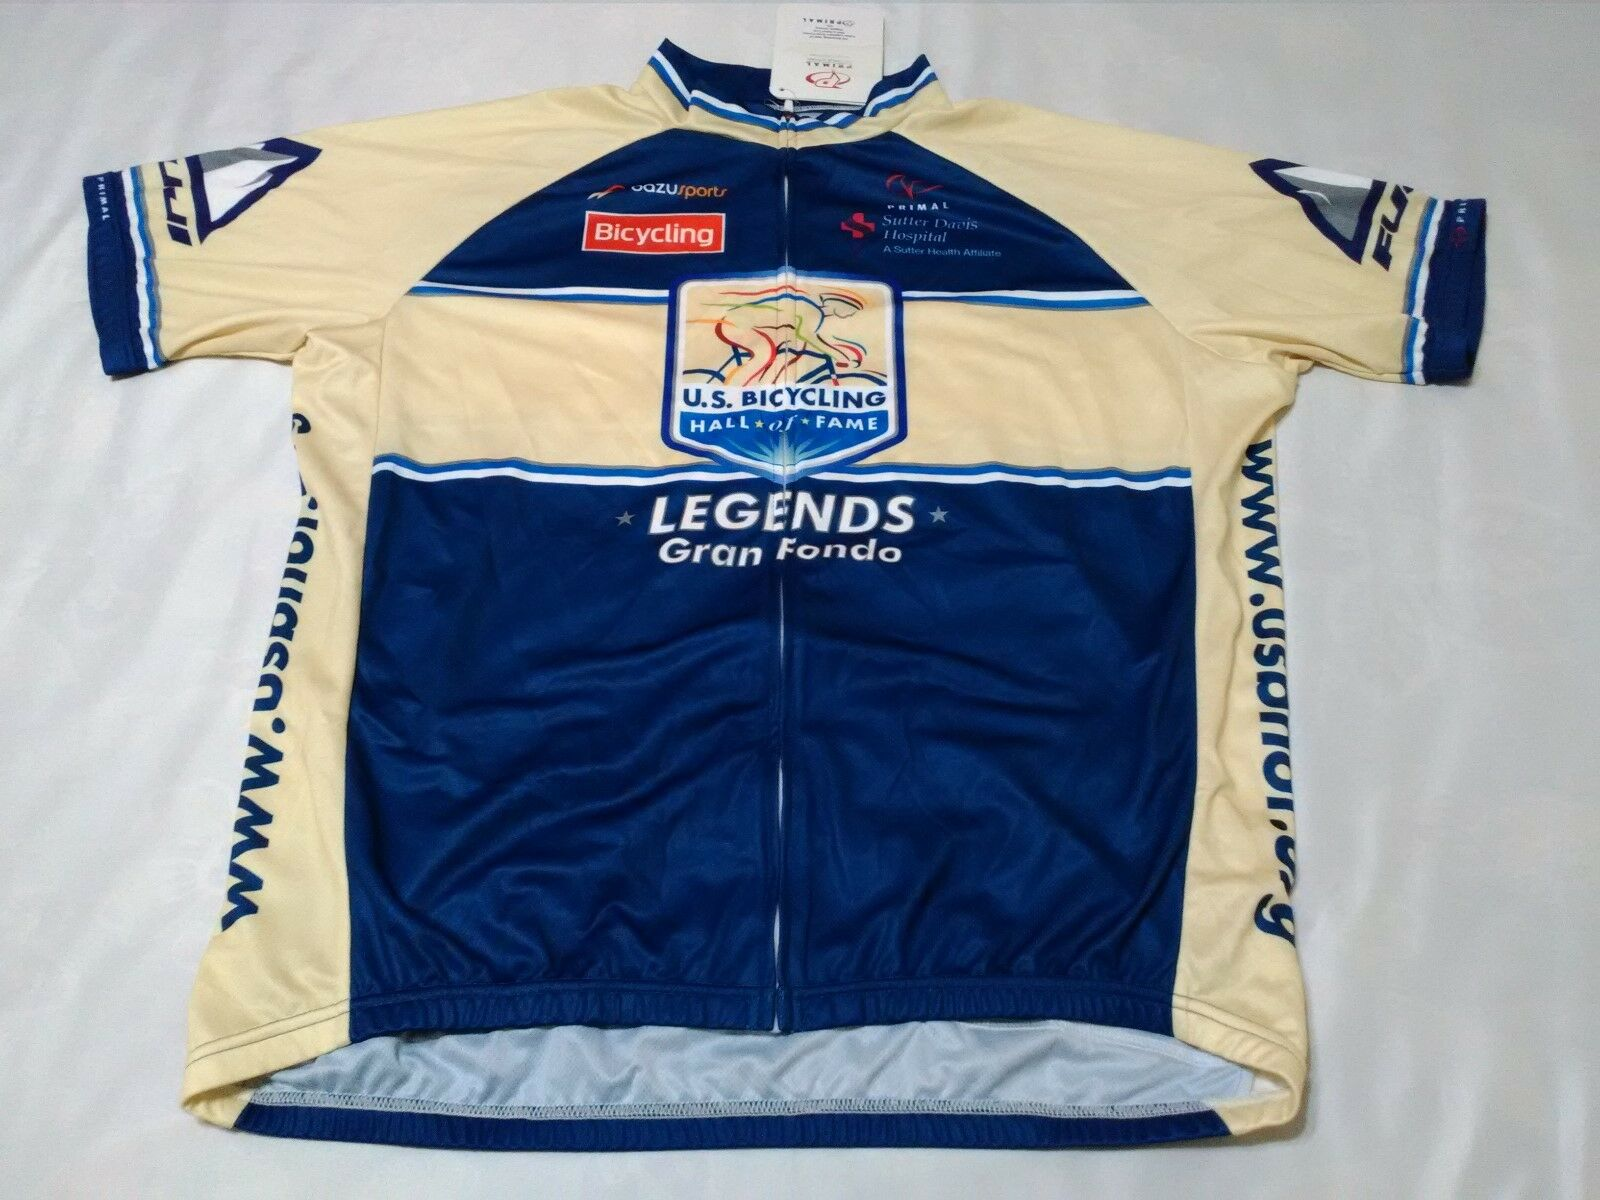 NWT primal mens cycling shirt top  riding racing jersey us hall fame legends 2XL  online shopping